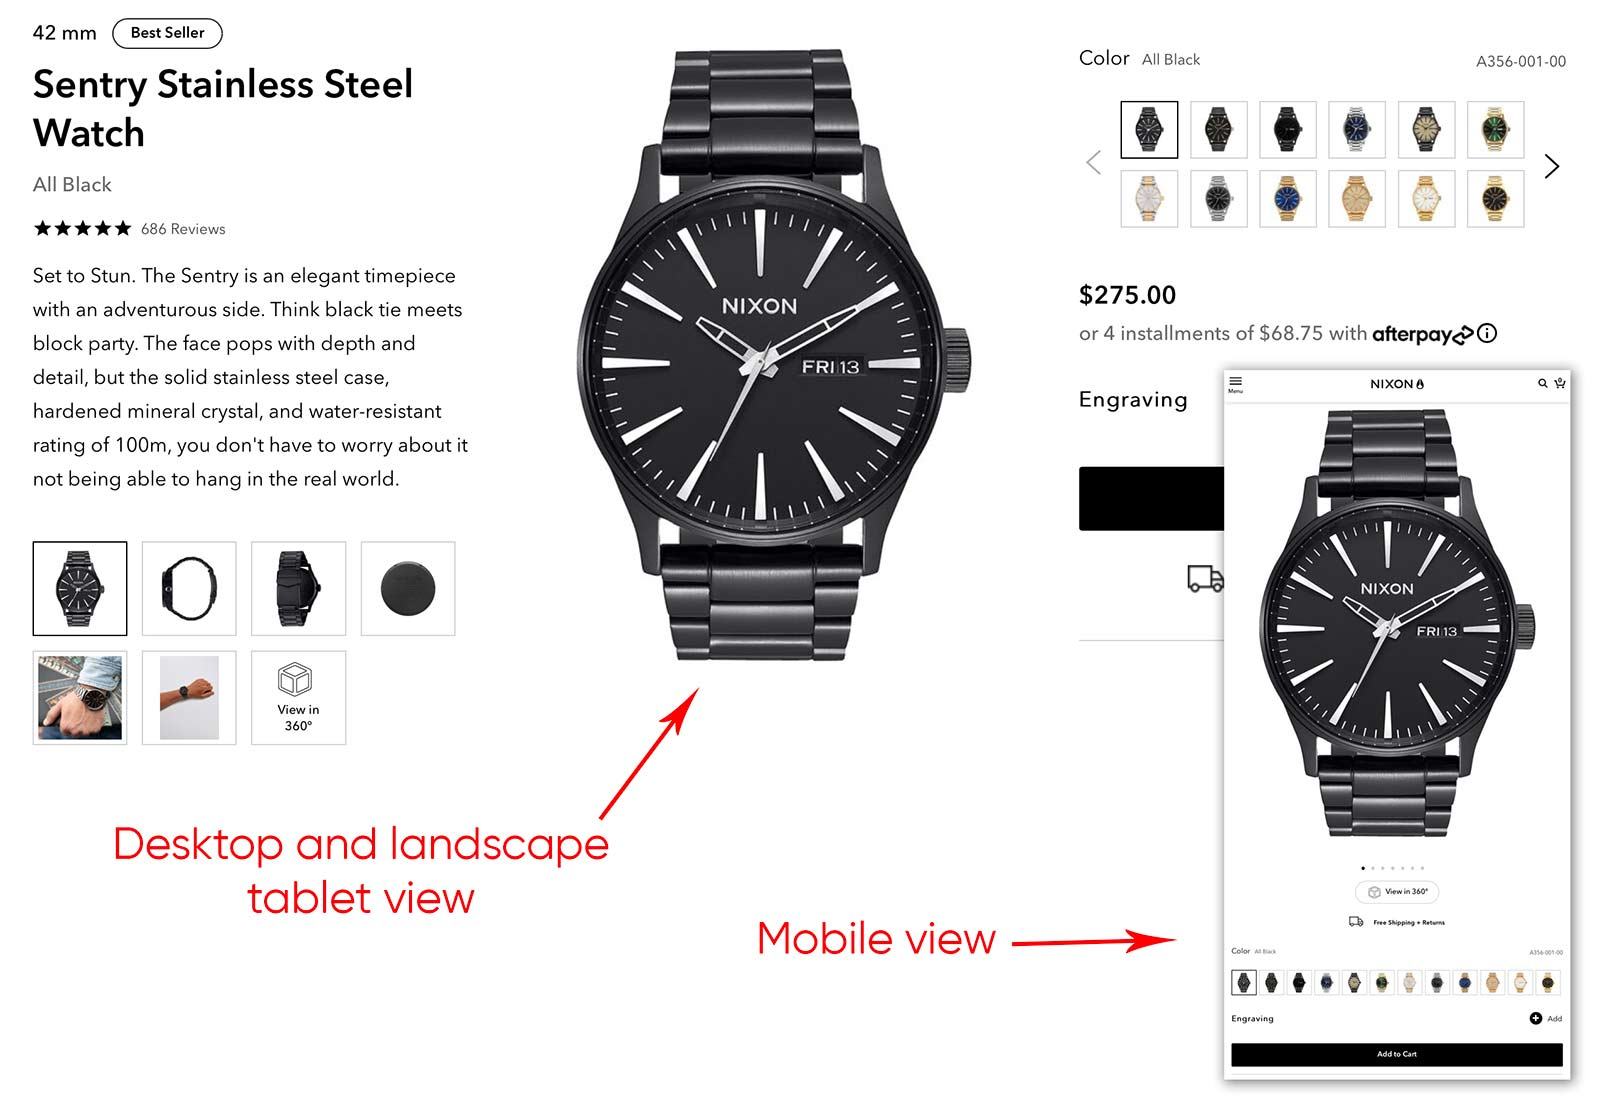 Nixon watch product page, featuring a large image of a stylish watch